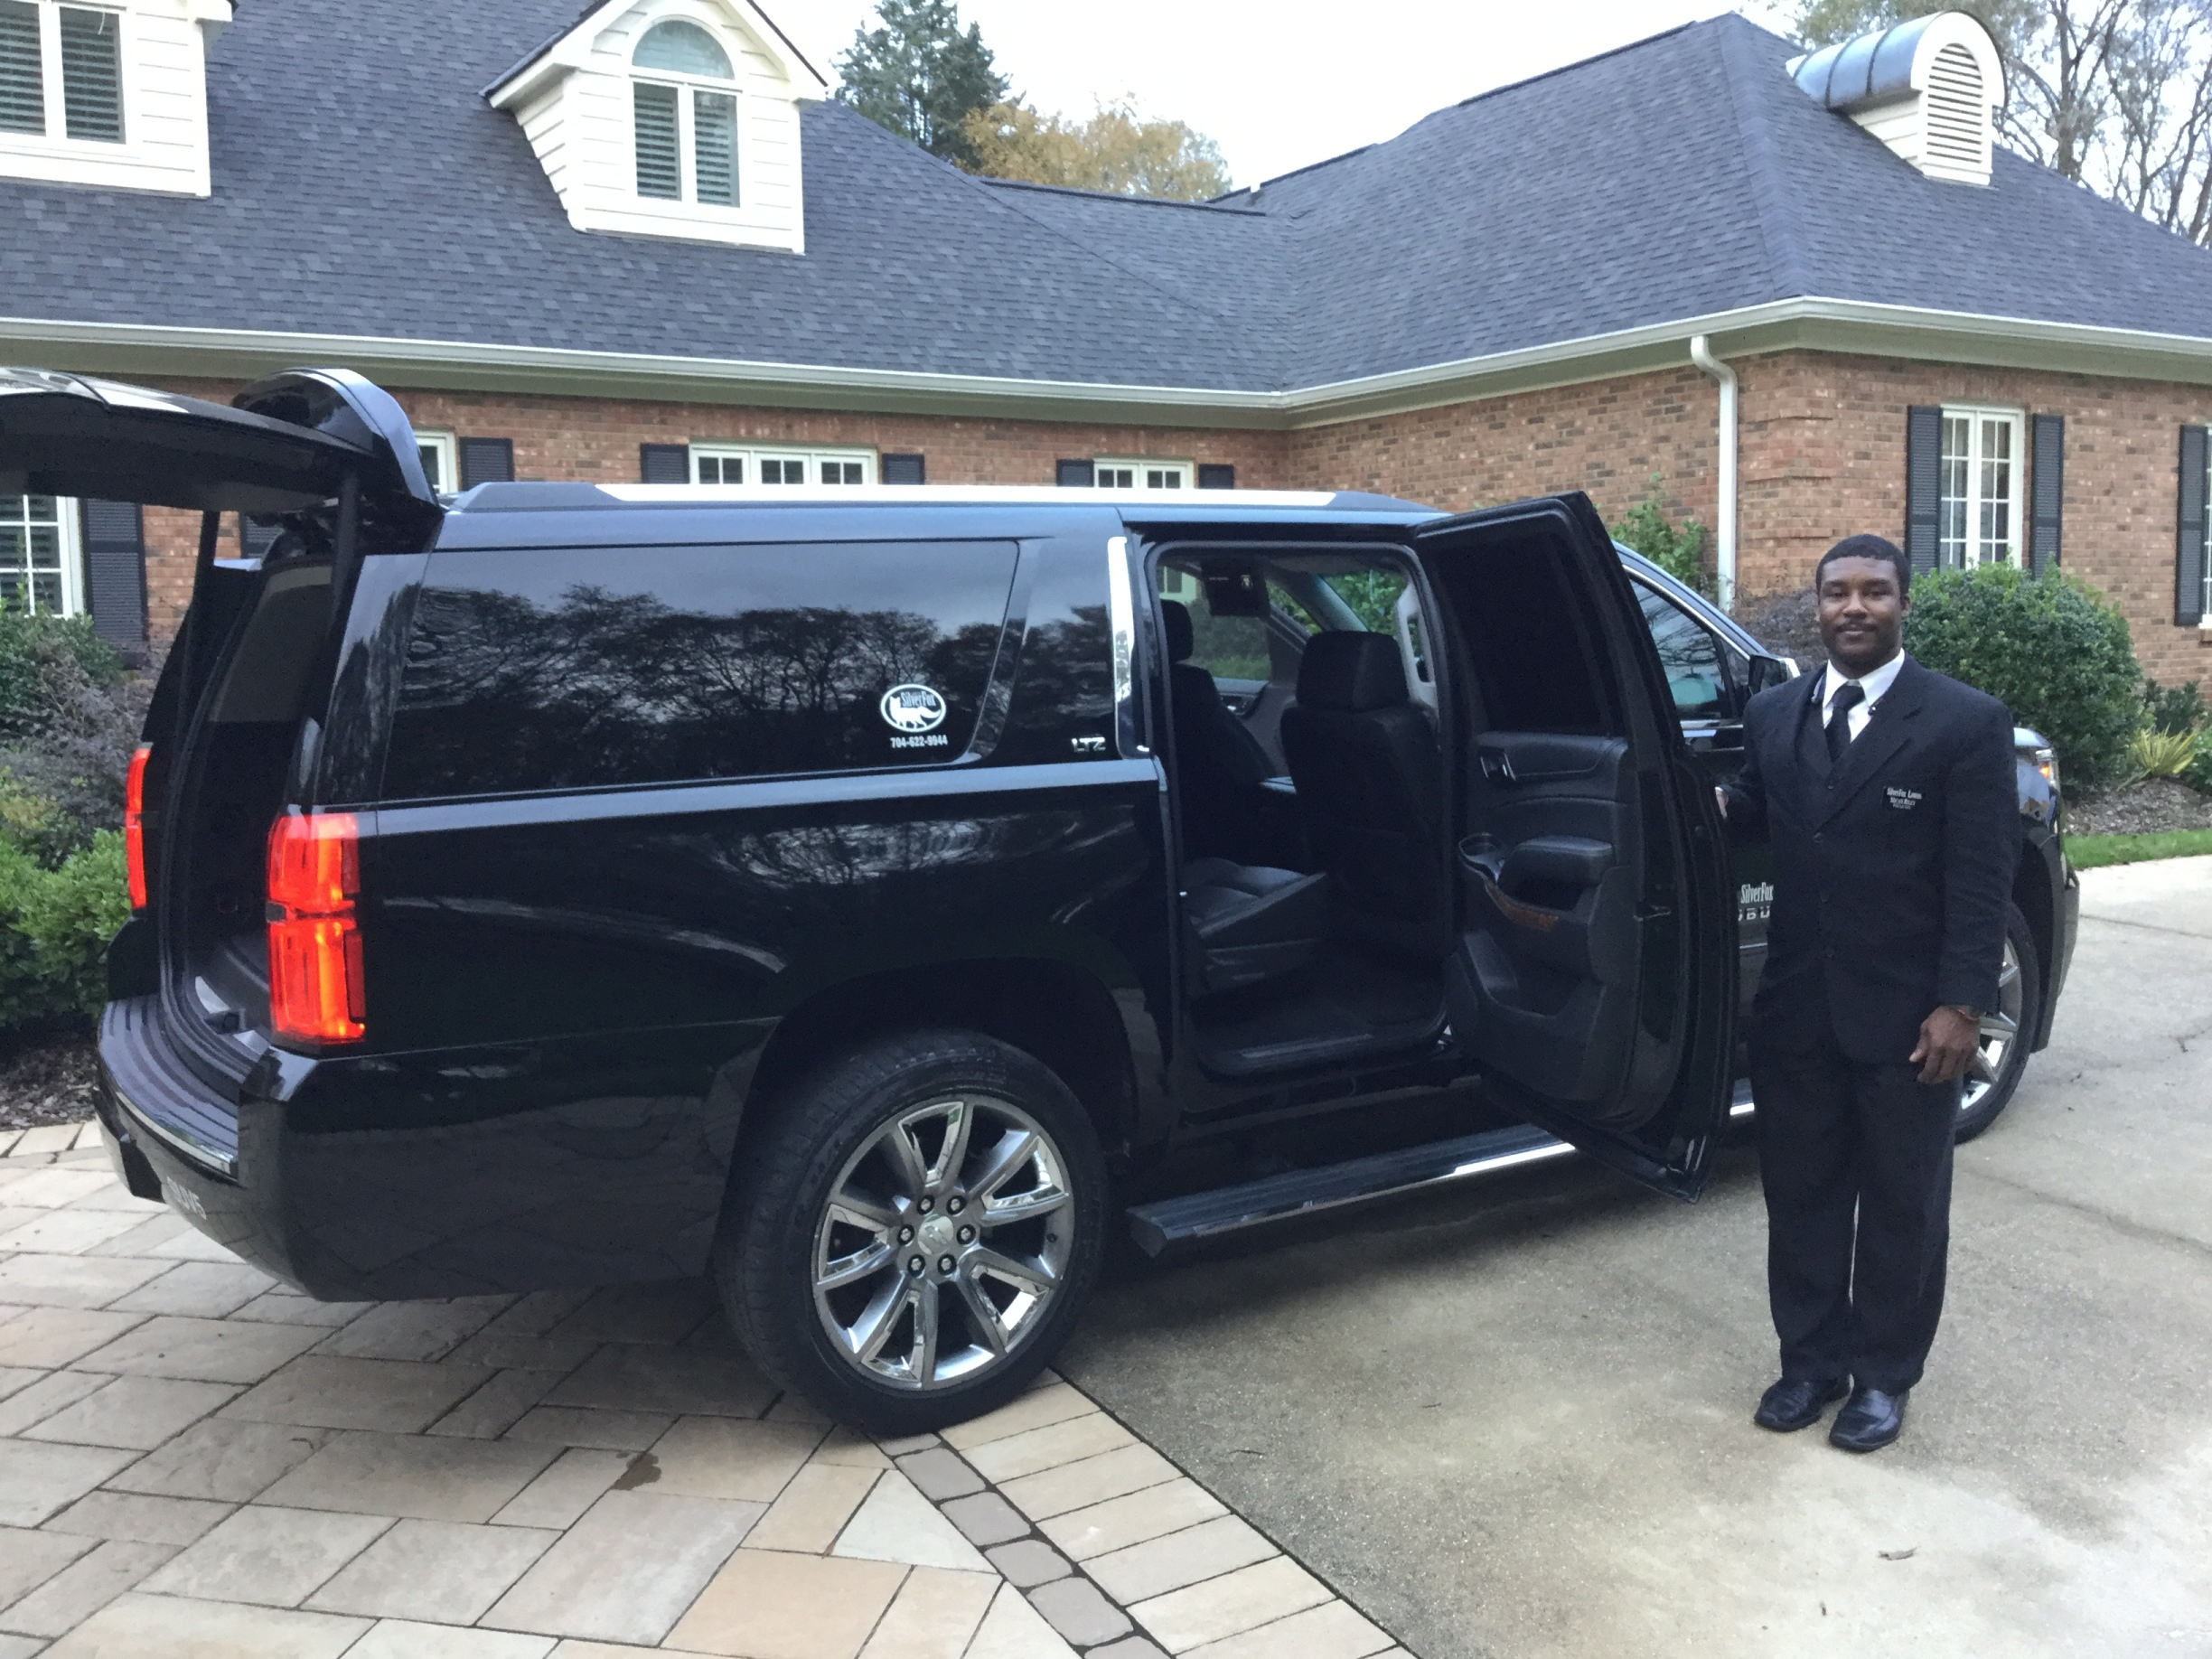 SilverFox Limos Lincoln Limos Hummer Limos Chauffeured